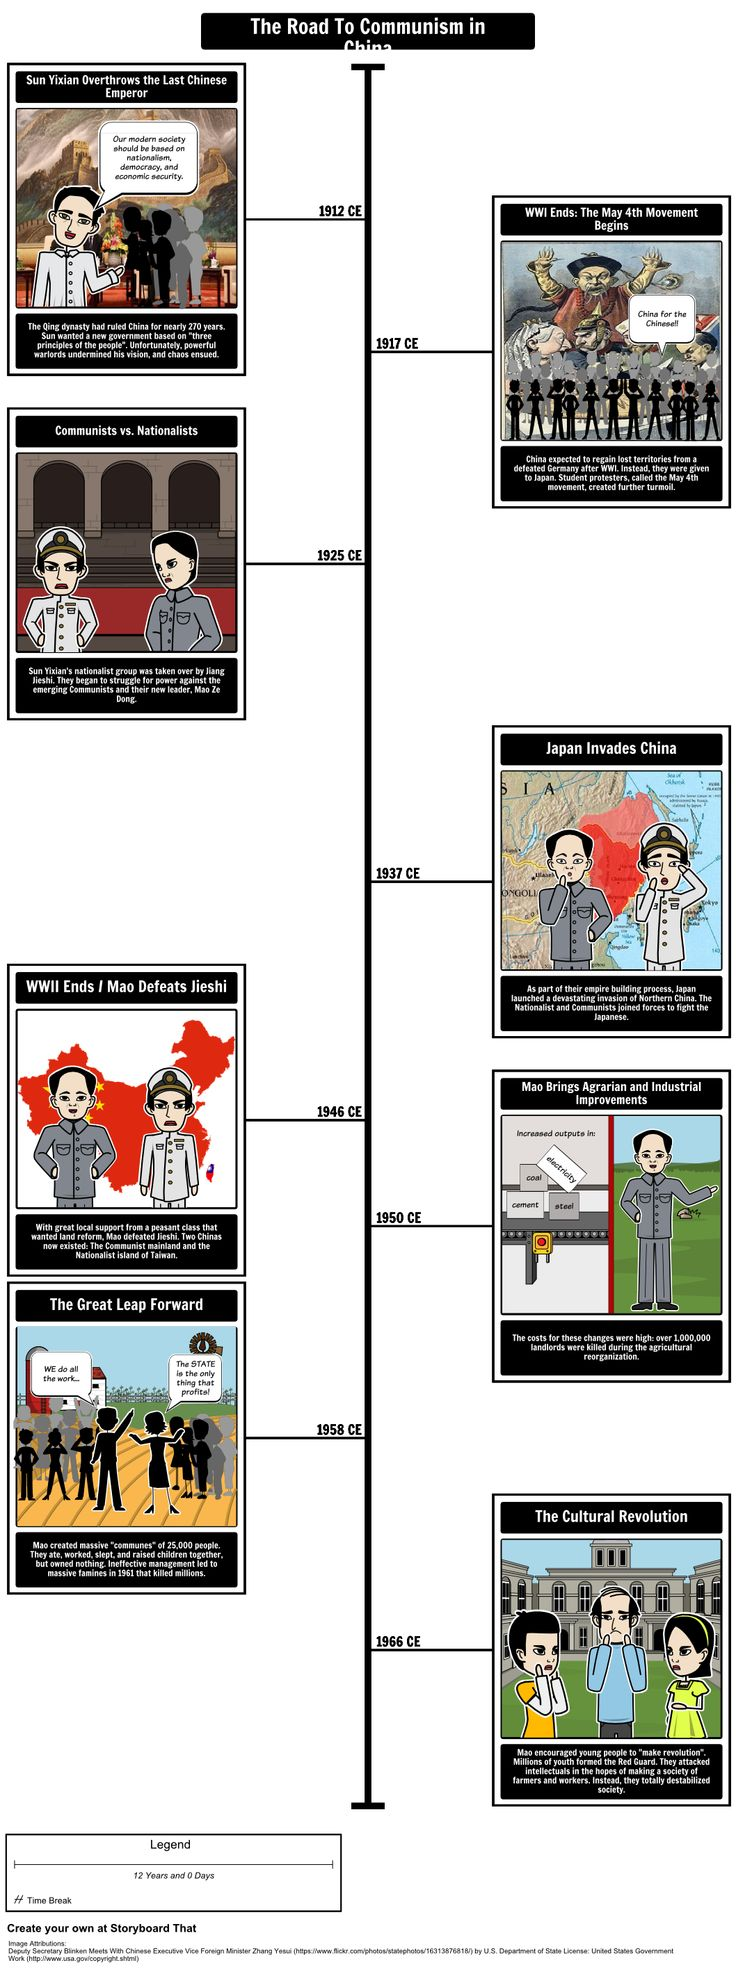 Communism and the Russian Revolution - The Road to Communism in China: In this activity, students will create a timeline charting the development of communism in China in the 20th century.